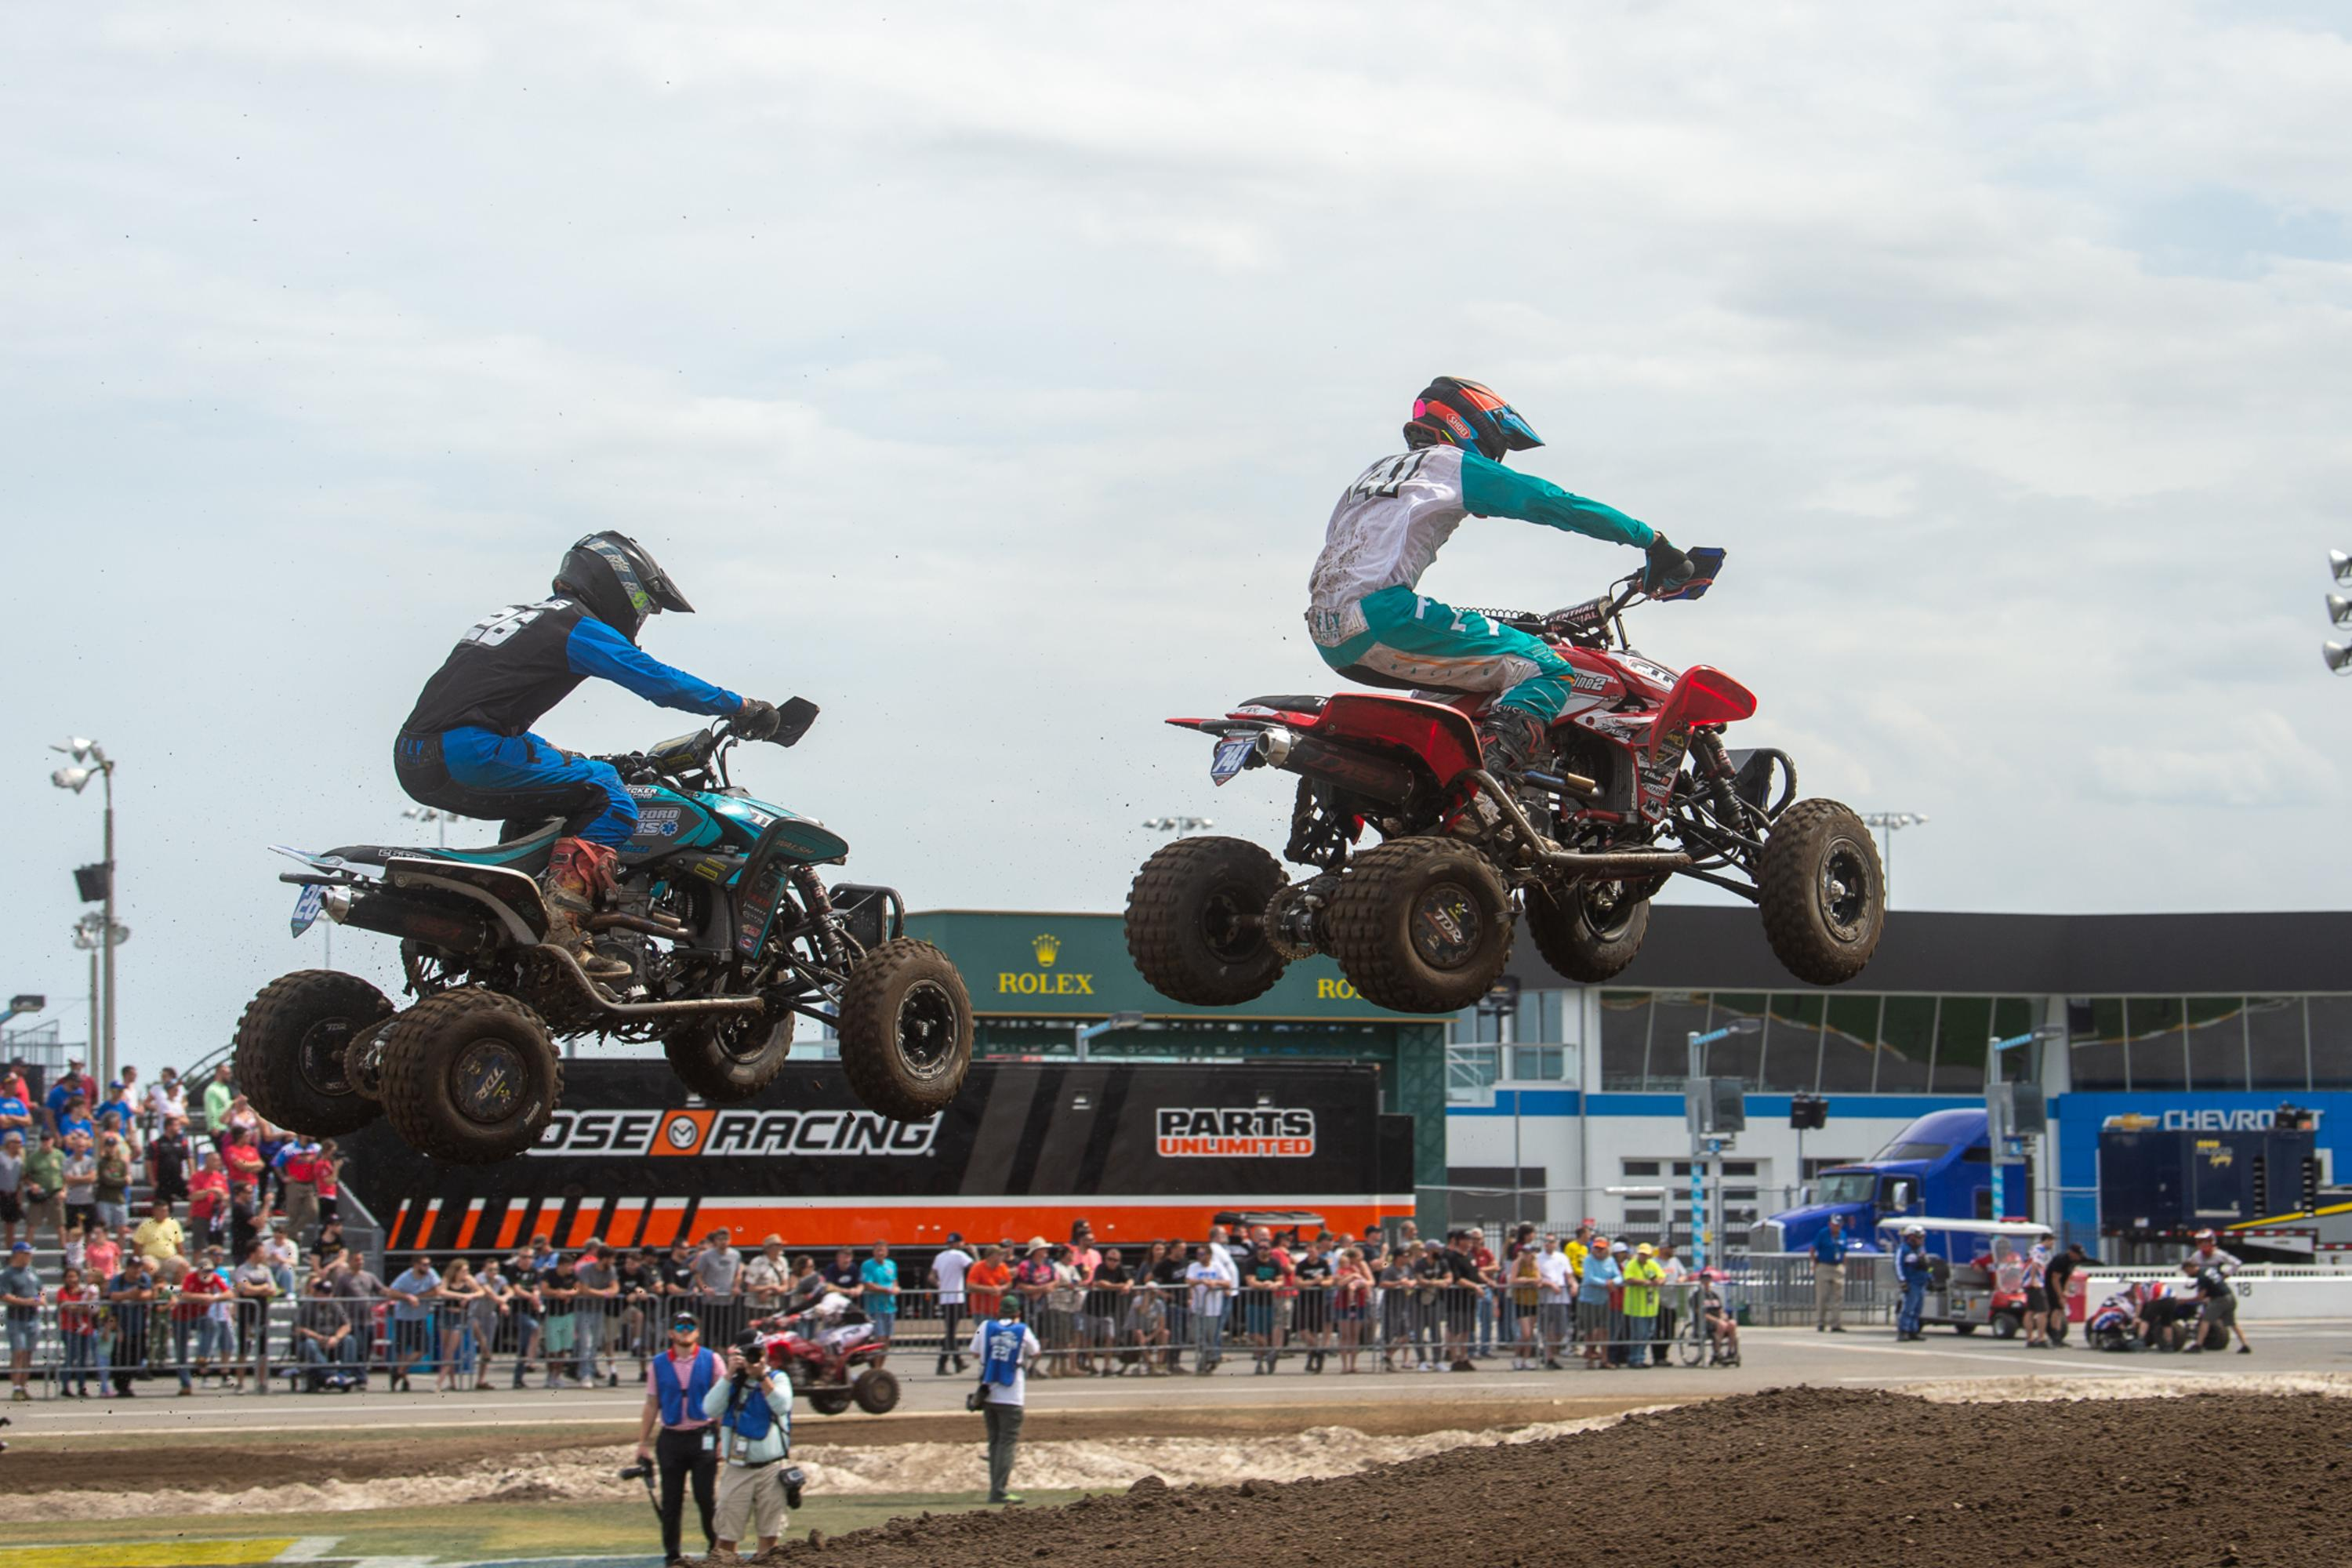 RLT Competition Bulletin 2020-1: All Motorsports Activities Postposed Thru Easter